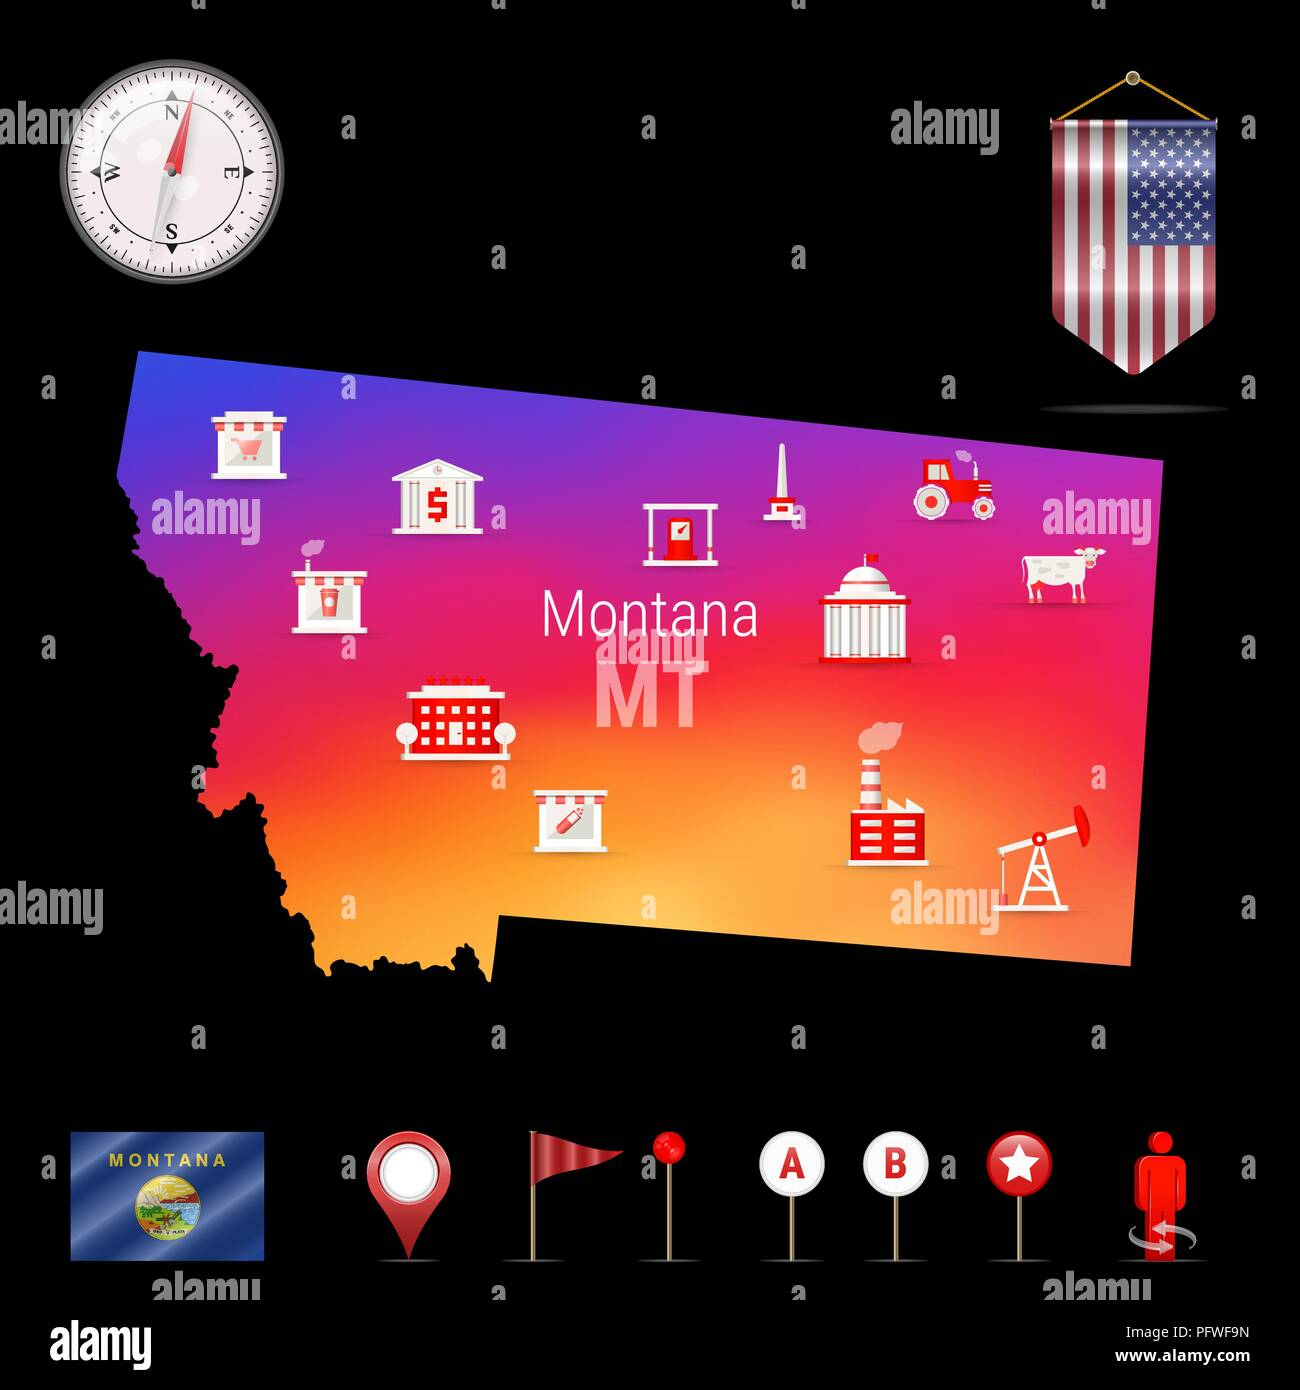 Montana Vector Map, Night View. Compass Icon, Map Navigation Elements. Pennant Flag of the United States. Vector Flag of Montana. Various Industries, Economic Geography Icons. - Stock Vector